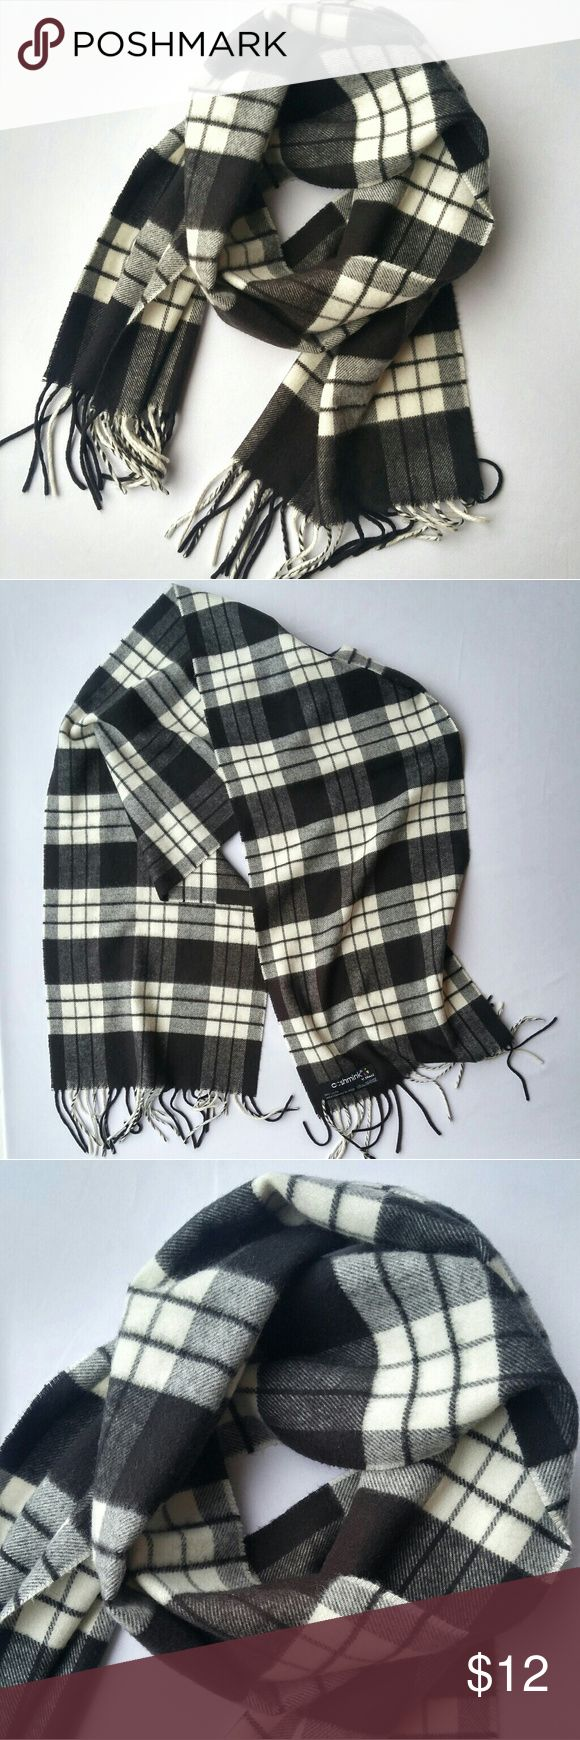 "Cashmink Black & Cream Plaid Acrylic Fringed Scarf Luxurious, super soft texture Acrylic fiber, made in Germany Black & off-white color Excellent pre-owned condition, no stains, holes, or pilling 11.5"" x 54"", not counting fringe Fringe is approx. 3.5"" long Cashmink Accessories Scarves & Wraps"